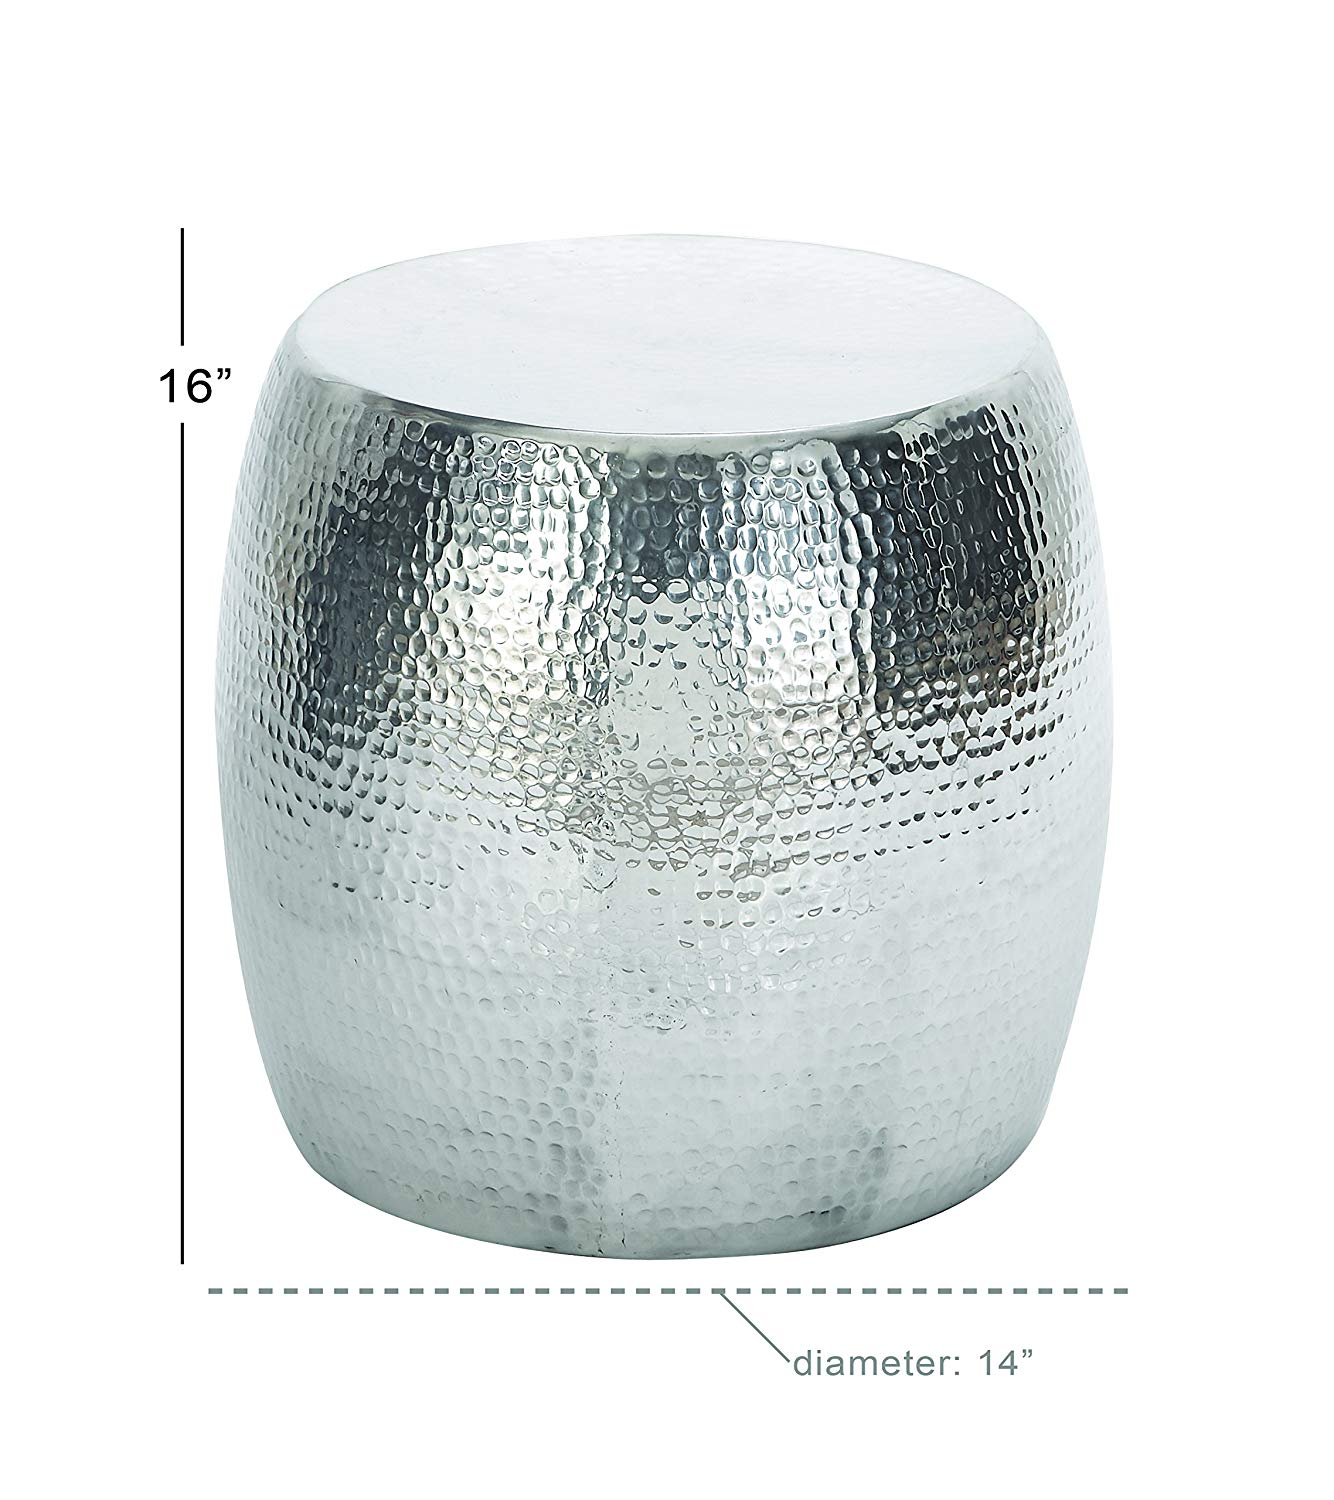 deco benzara vintage inspire aluminum hammered knurl accent table stool diameter silver kitchen dining pottery barn round pedestal mini desk lamp big coffee tables mirrored side